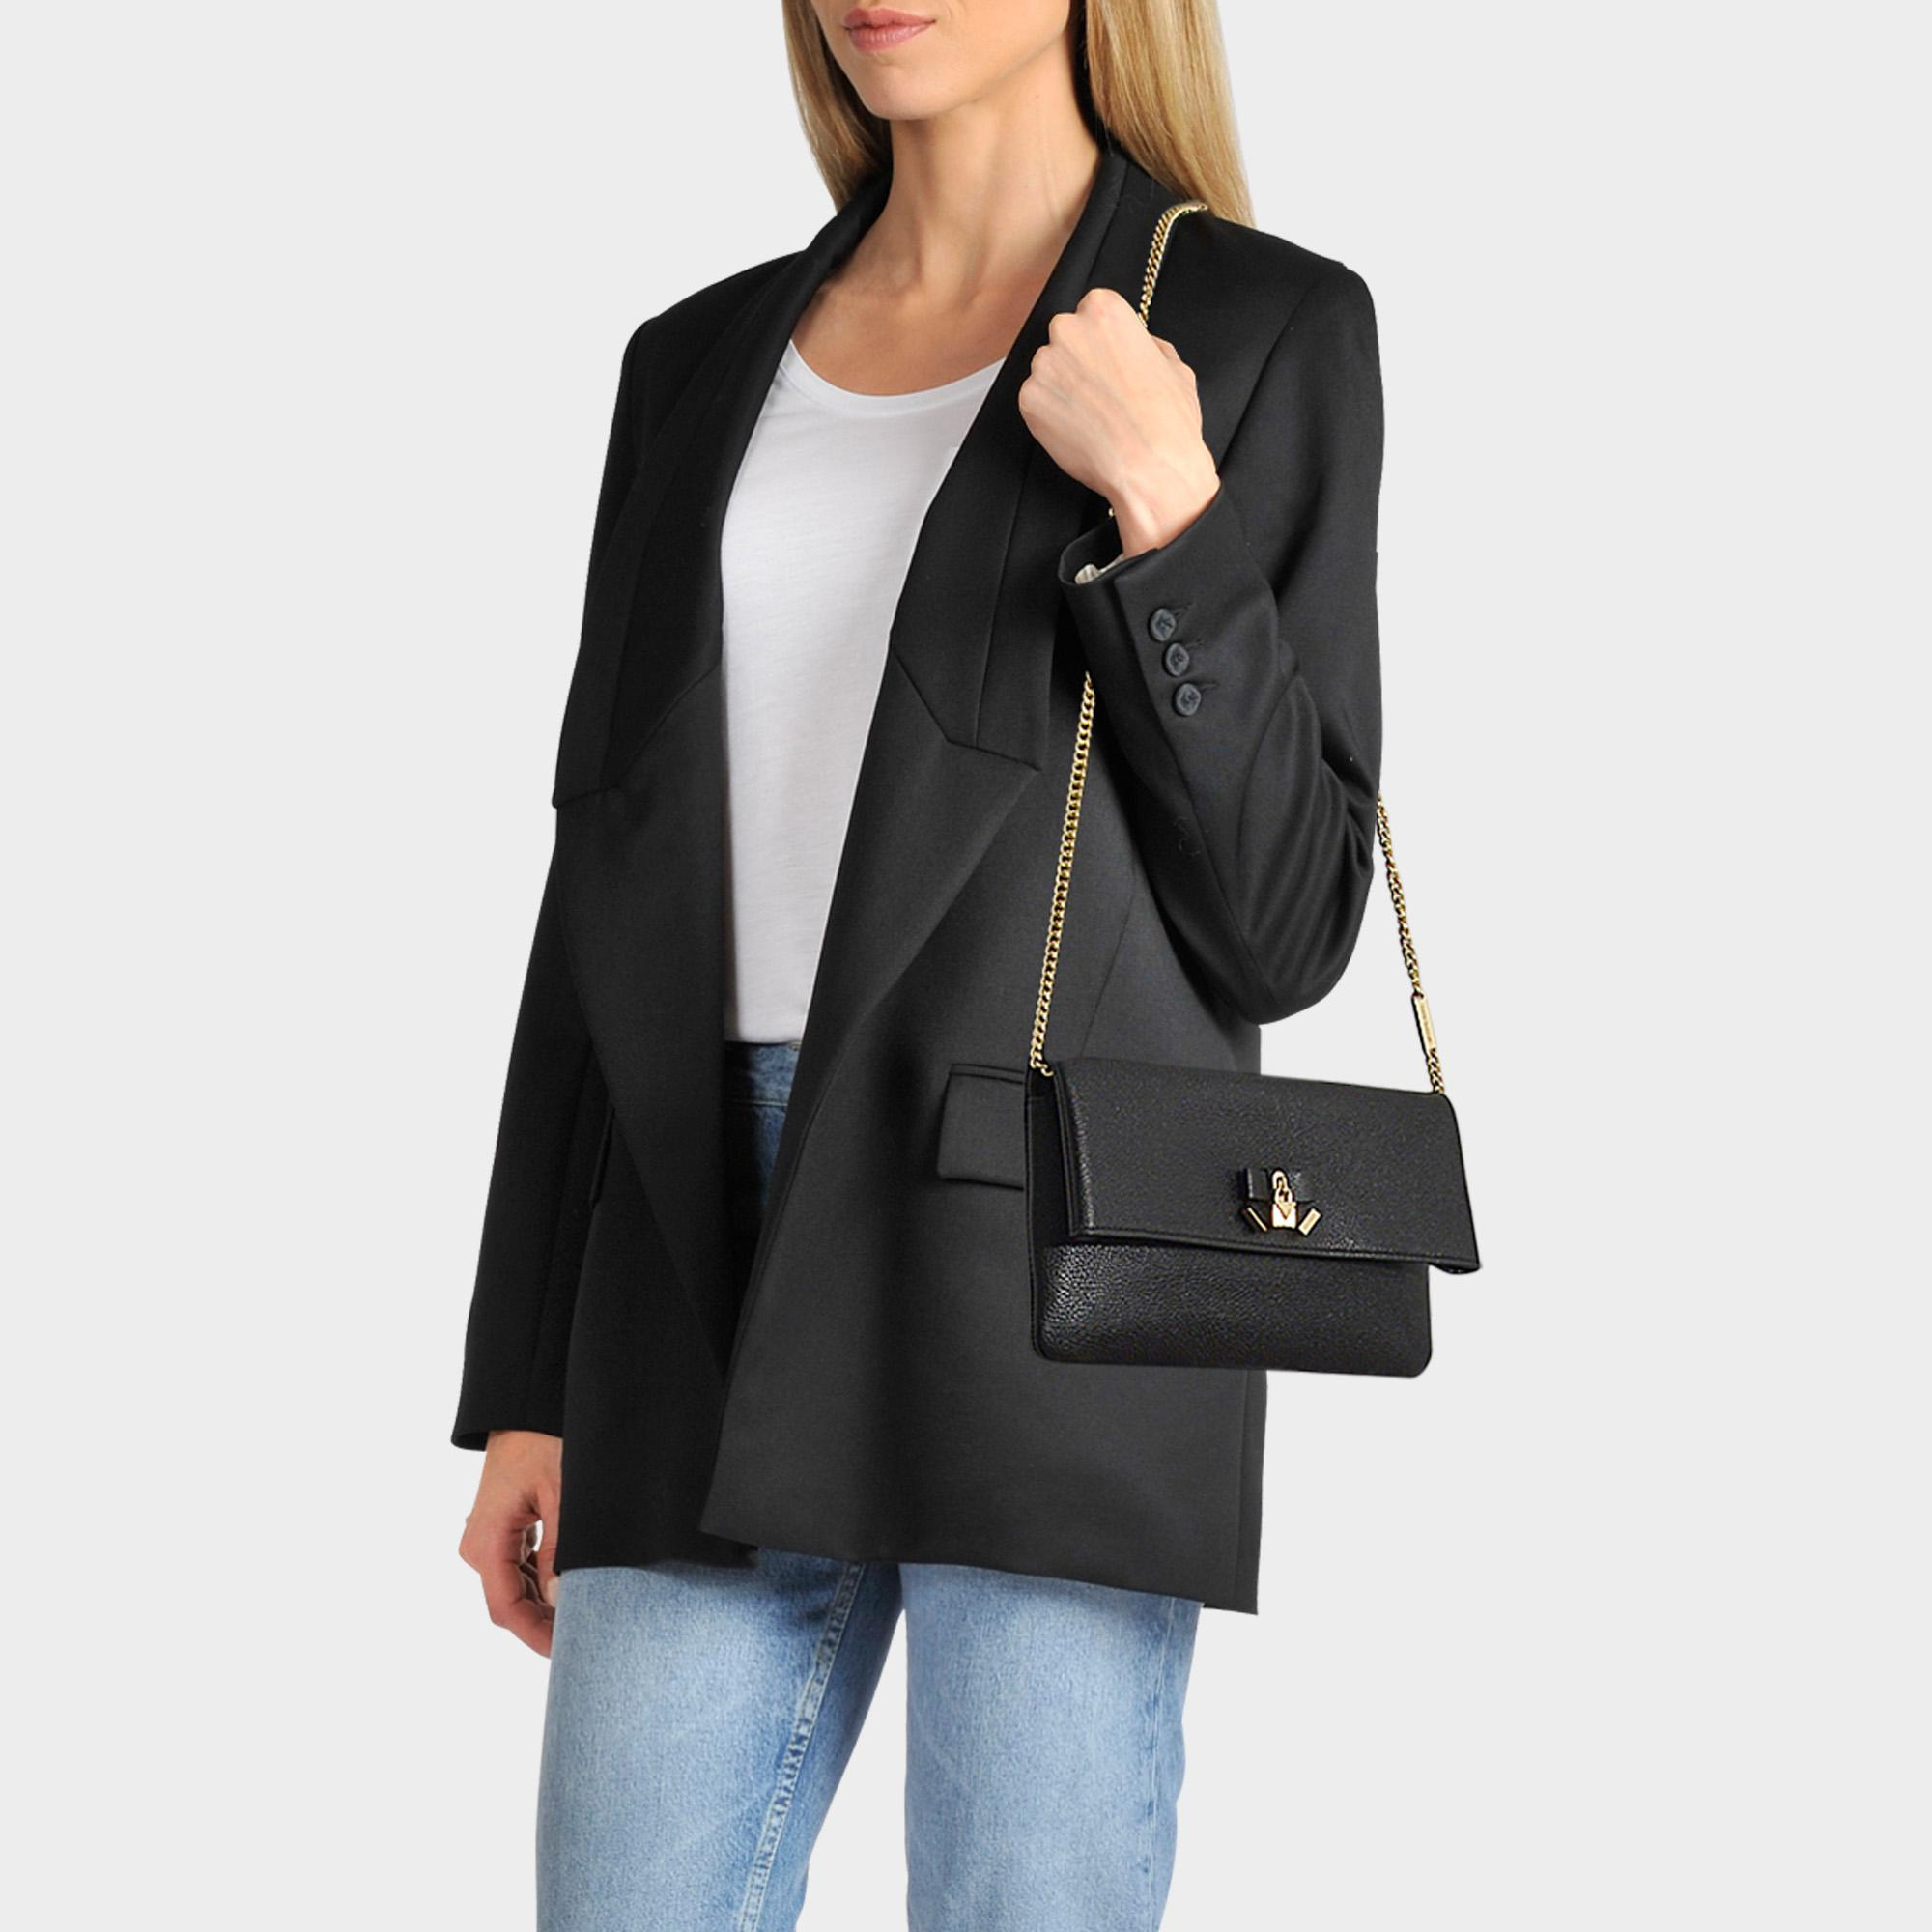 6e39b5856863 Lyst - MICHAEL Michael Kors Everly Medium Fold Over Clutch In Black ...